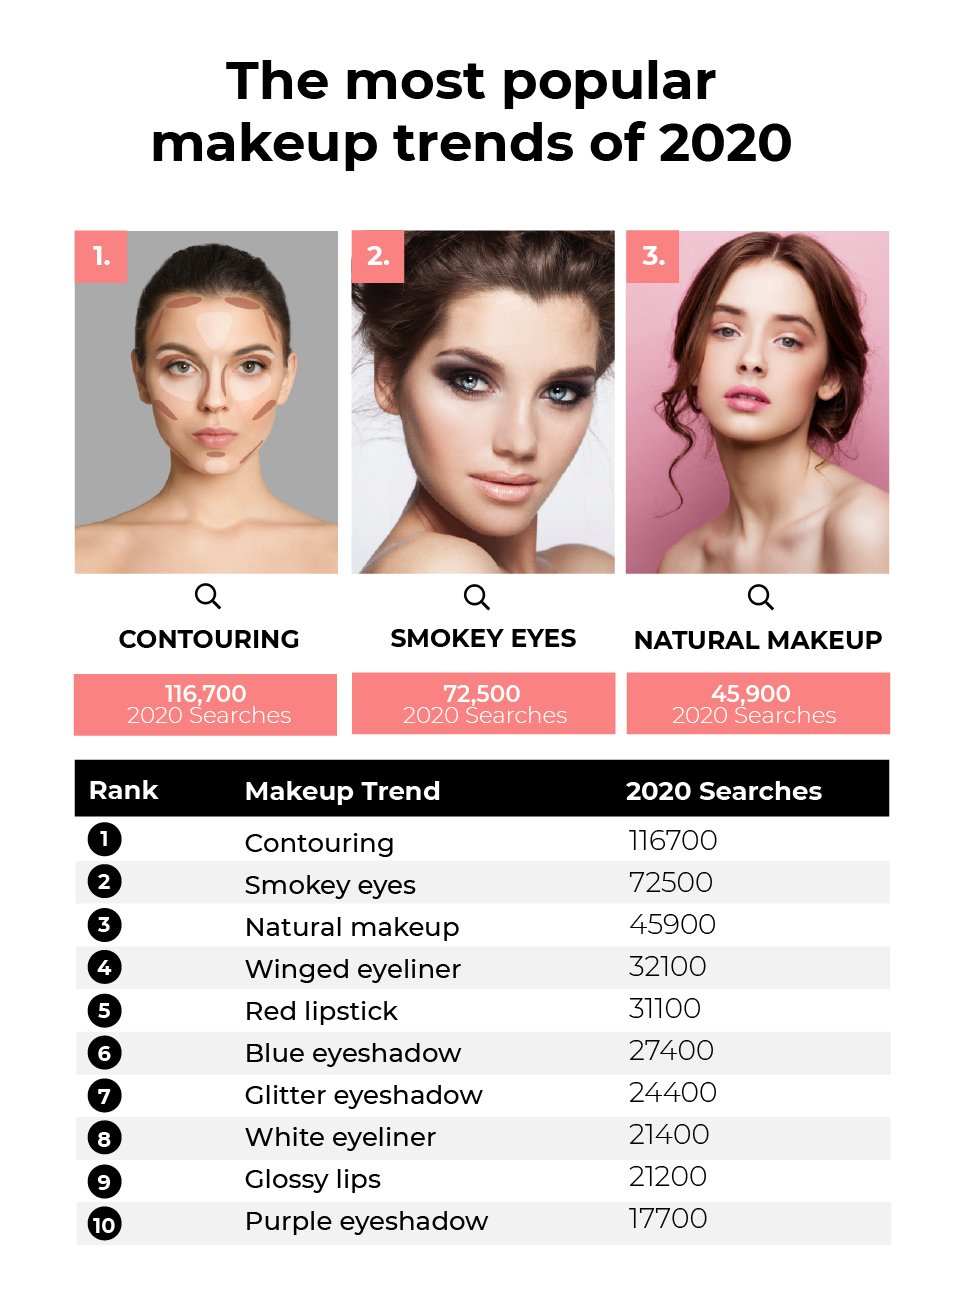 The most popular makeup trends of 2020: Contouring (116,700 searches), Smokey Eyes (72,500 searches) and Natural Makeup (45,900 searches)